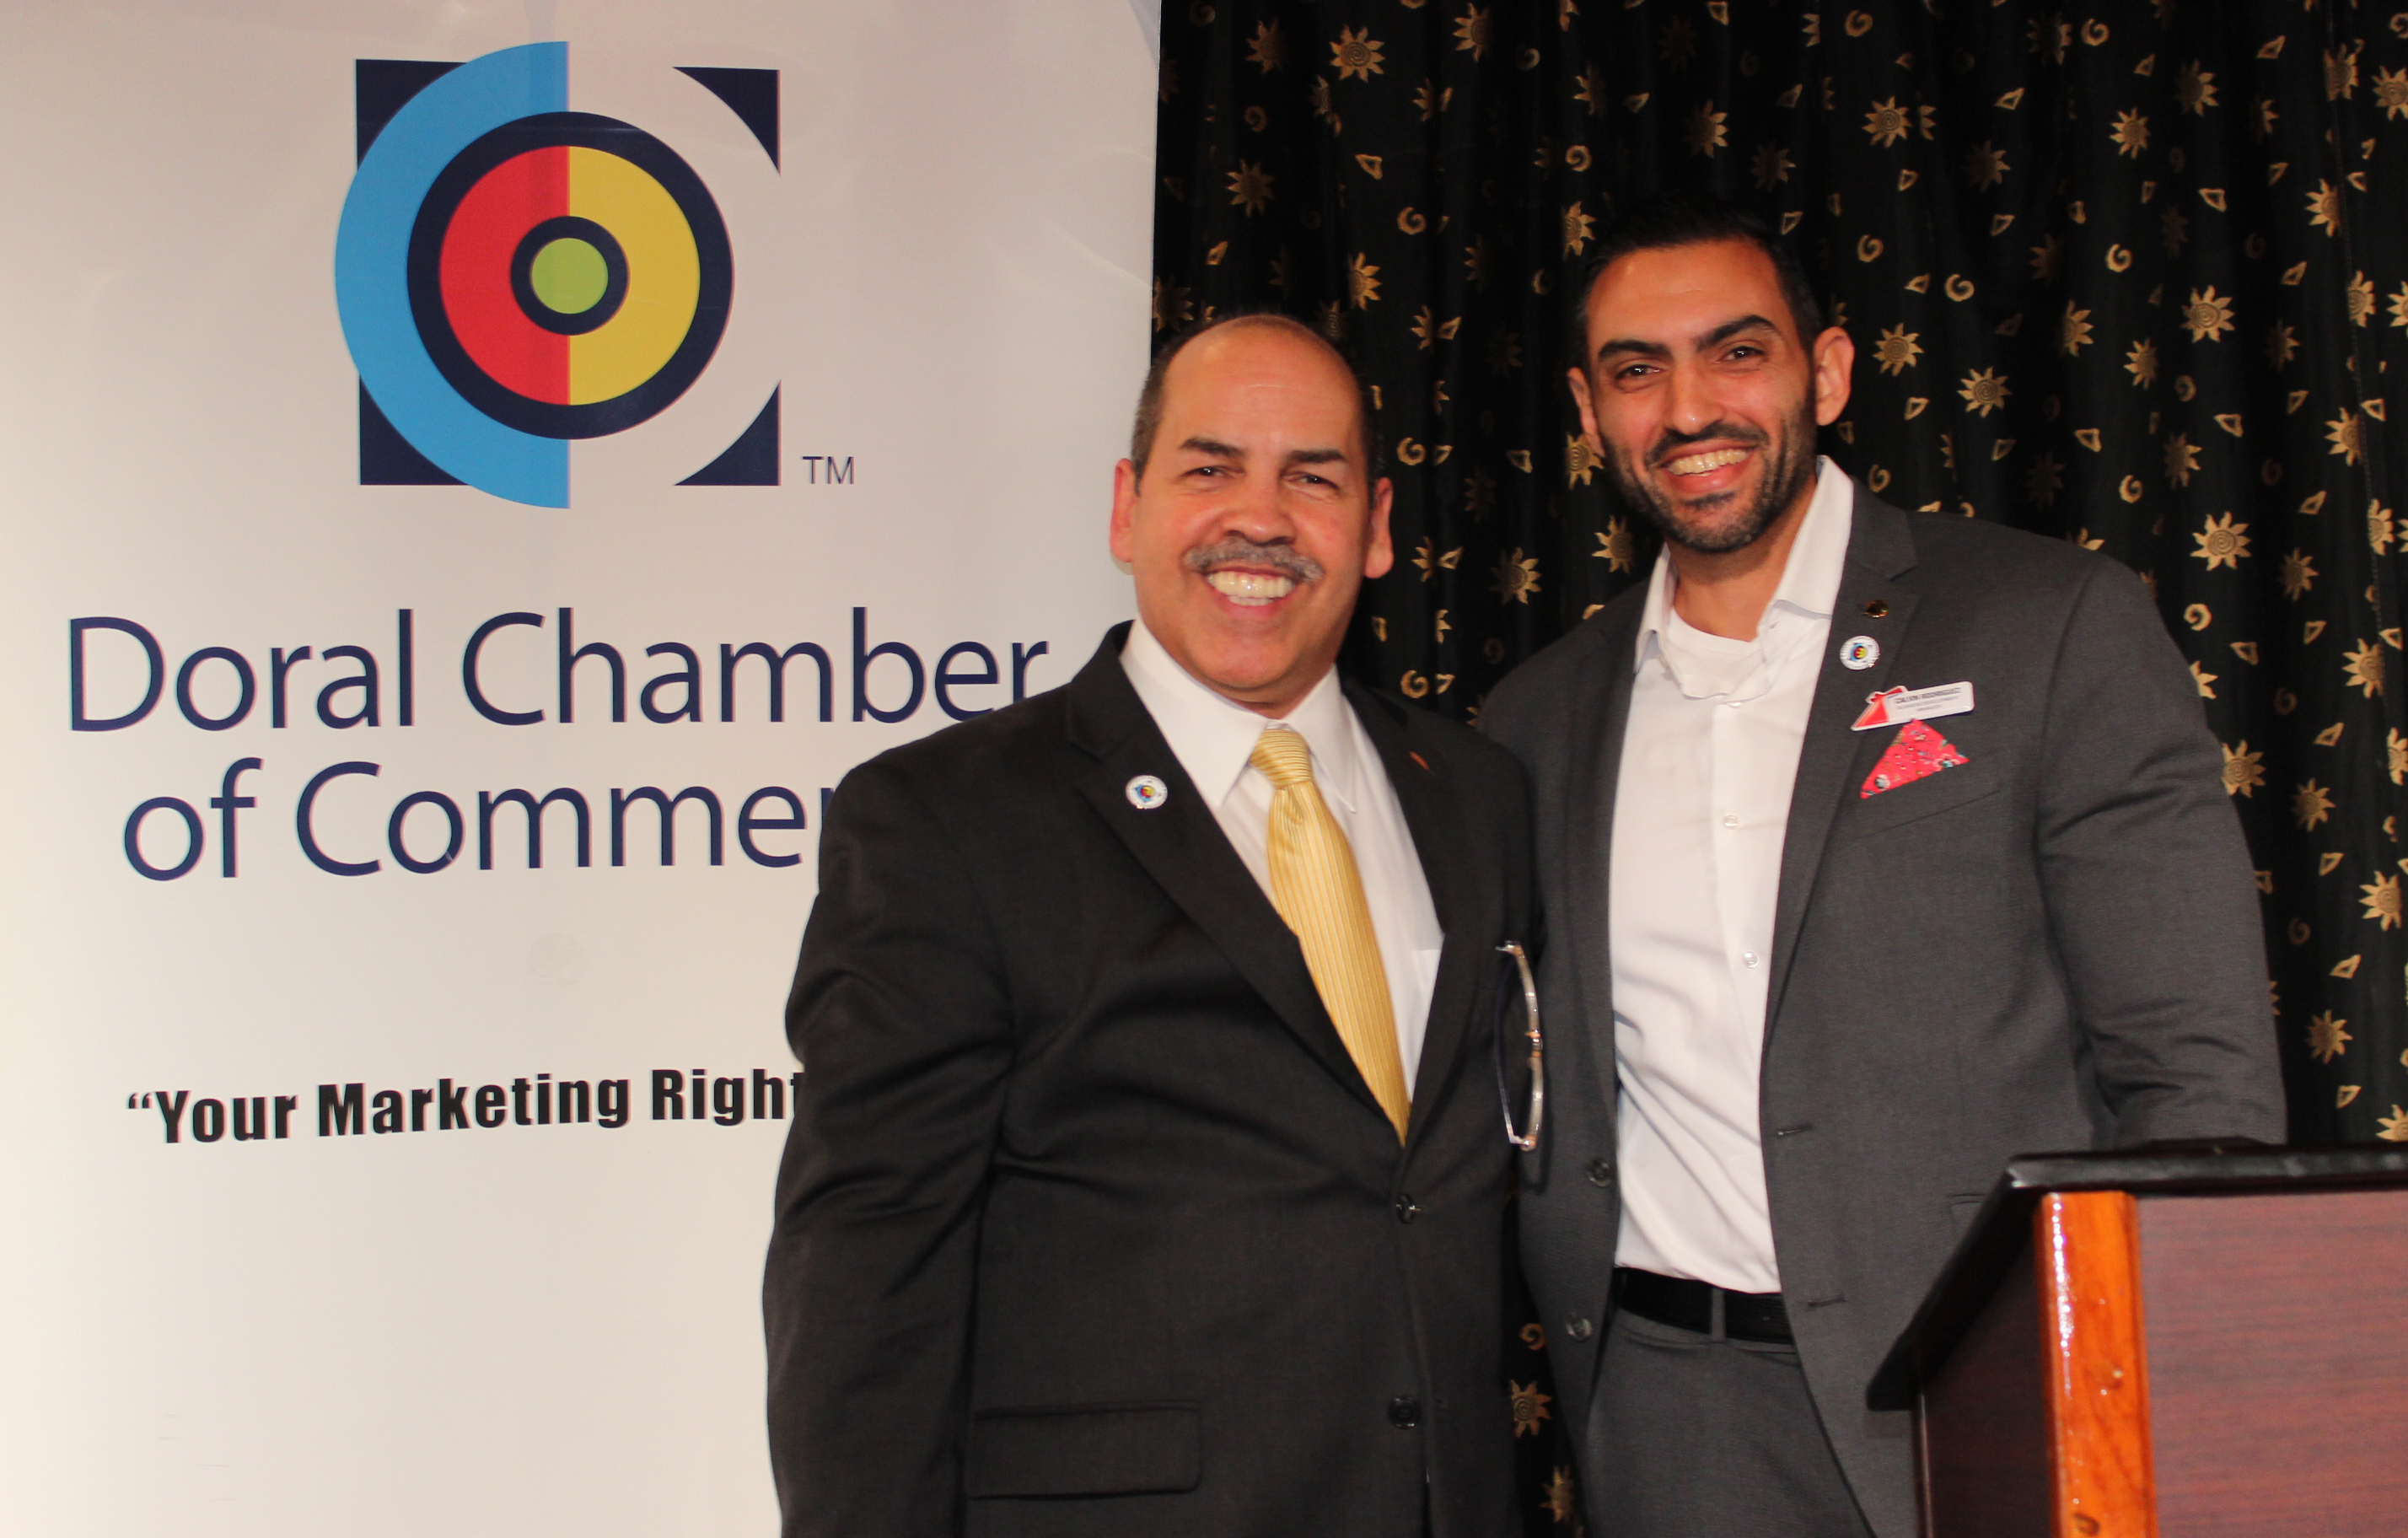 Doral Chamber of Commerce Carnival Cruise Luncheon 2019, Networking Event in Miami, Florida. Manny Sarmiento with Carnival Cruise Victory Host.